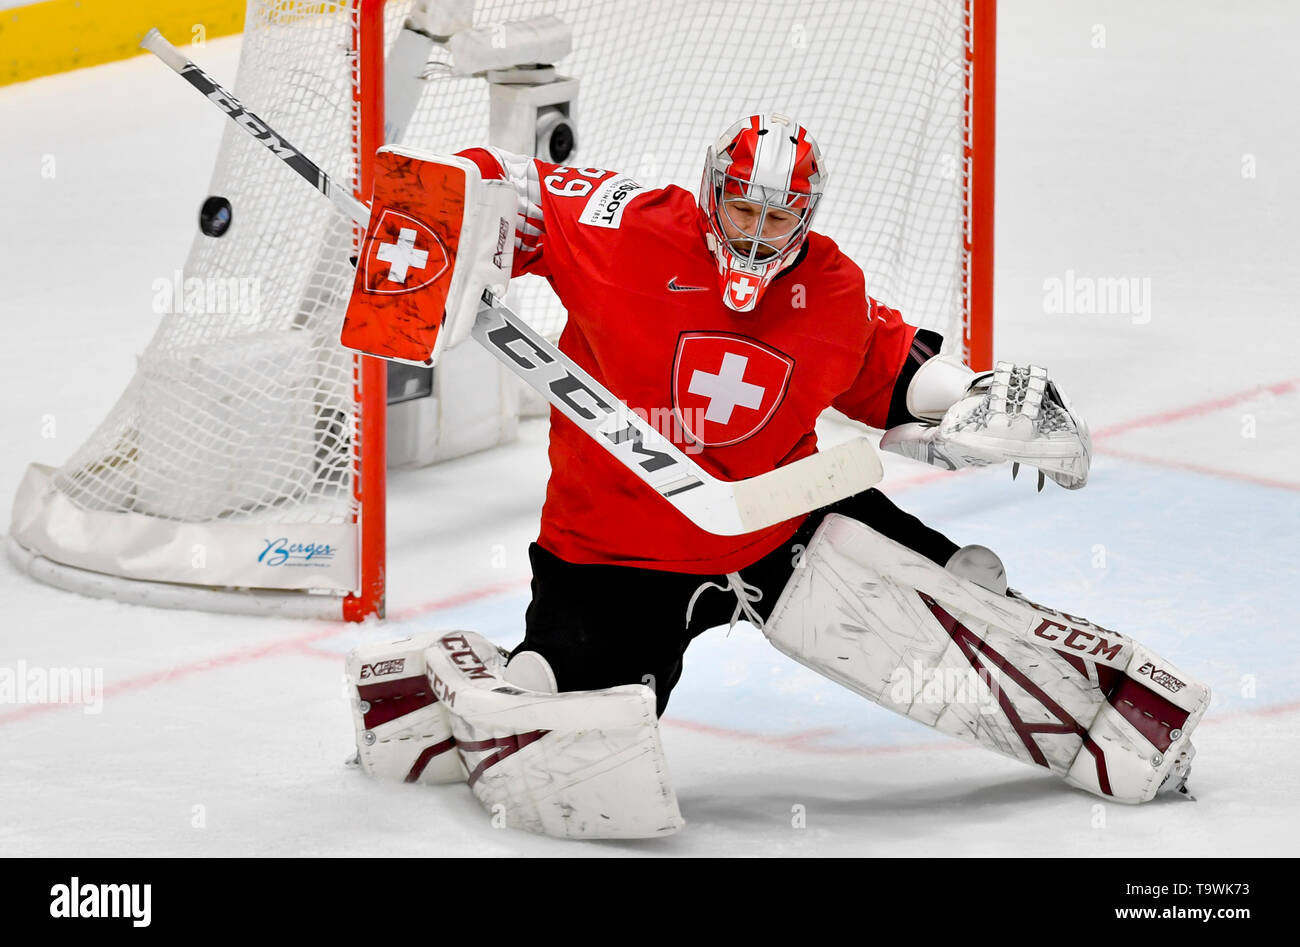 Bratislava, Slovakia. 21st May, 2019. Robert Mayer (SUI) in action during the match between Czech Republic and Switzerland within the 2019 IIHF World Championship in Bratislava, Slovakia, on May 21, 2019. Credit: Vit Simanek/CTK Photo/Alamy Live News Stock Photo